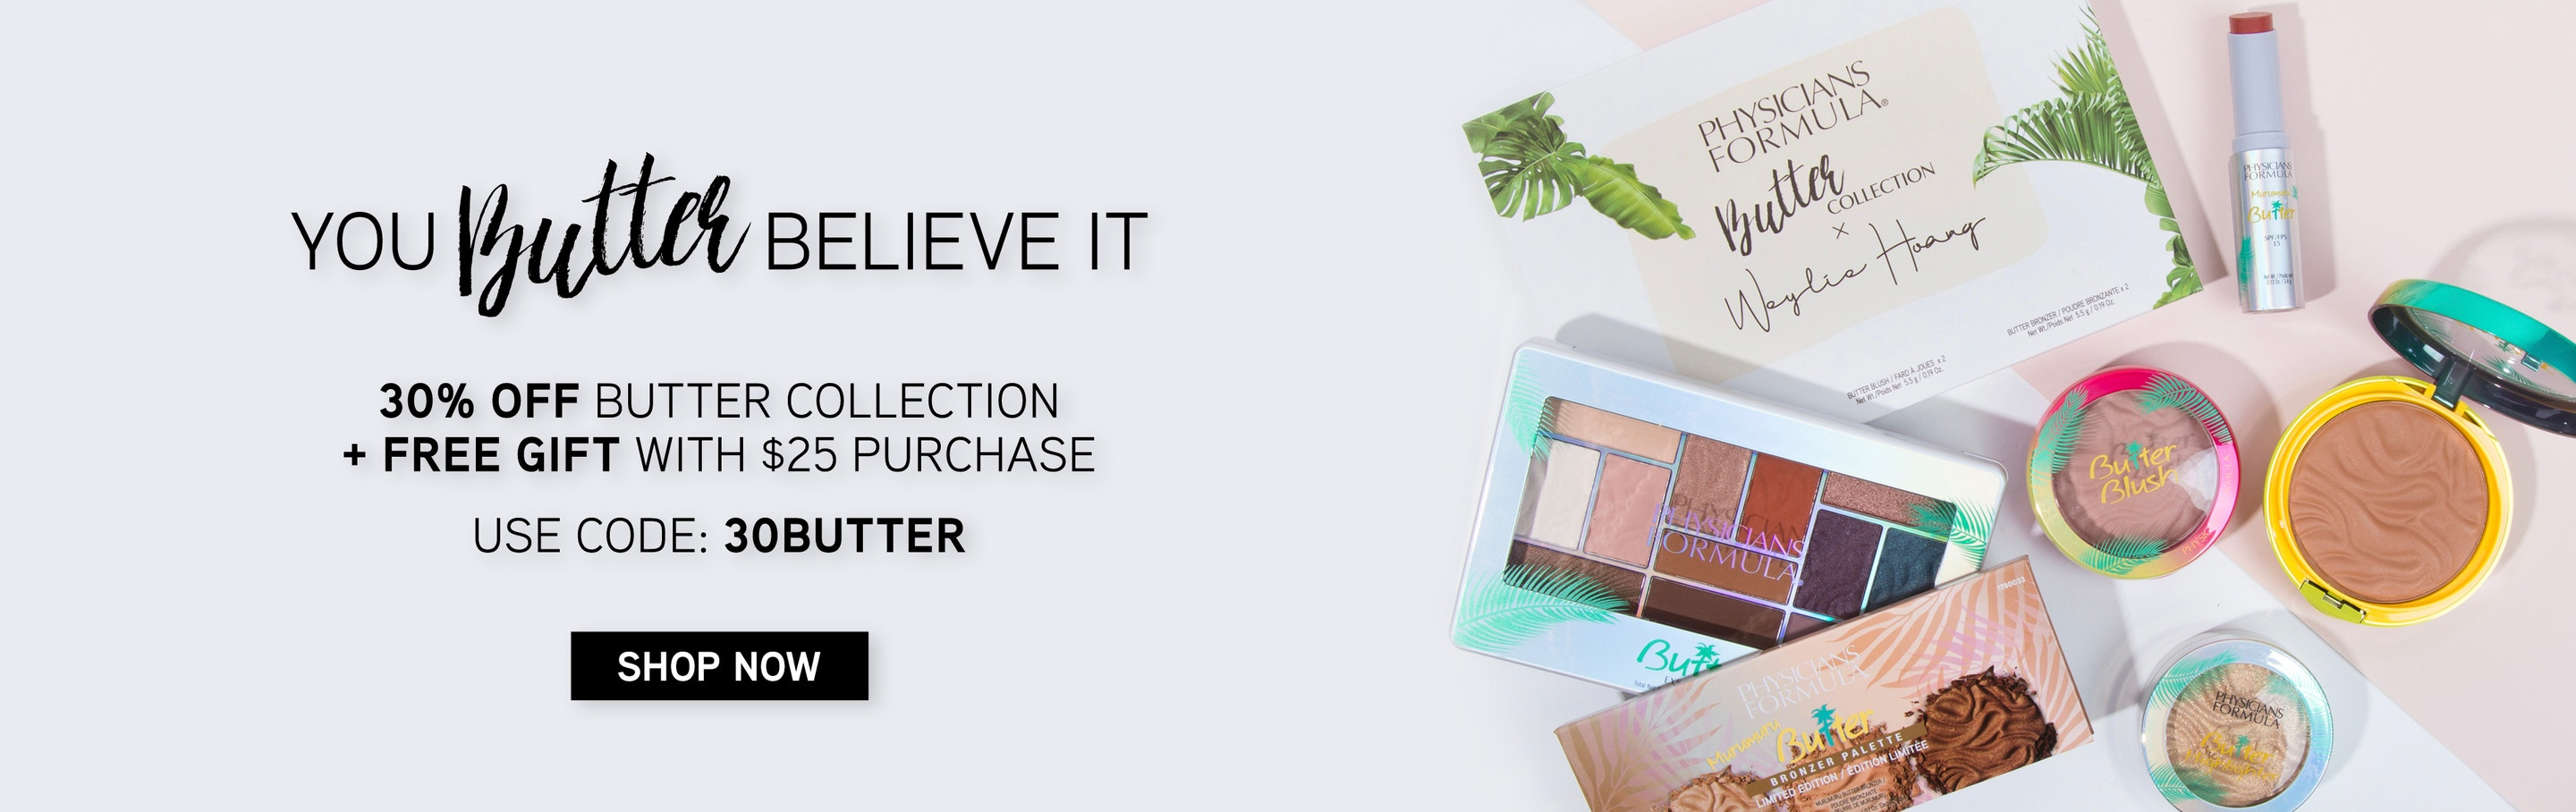 Physicians Formula   30% Off Butter Collection + Free Gift with $25+ purchase - save on Butter Bronzer, blush and highlighter - multiple products displayed on pink and white background